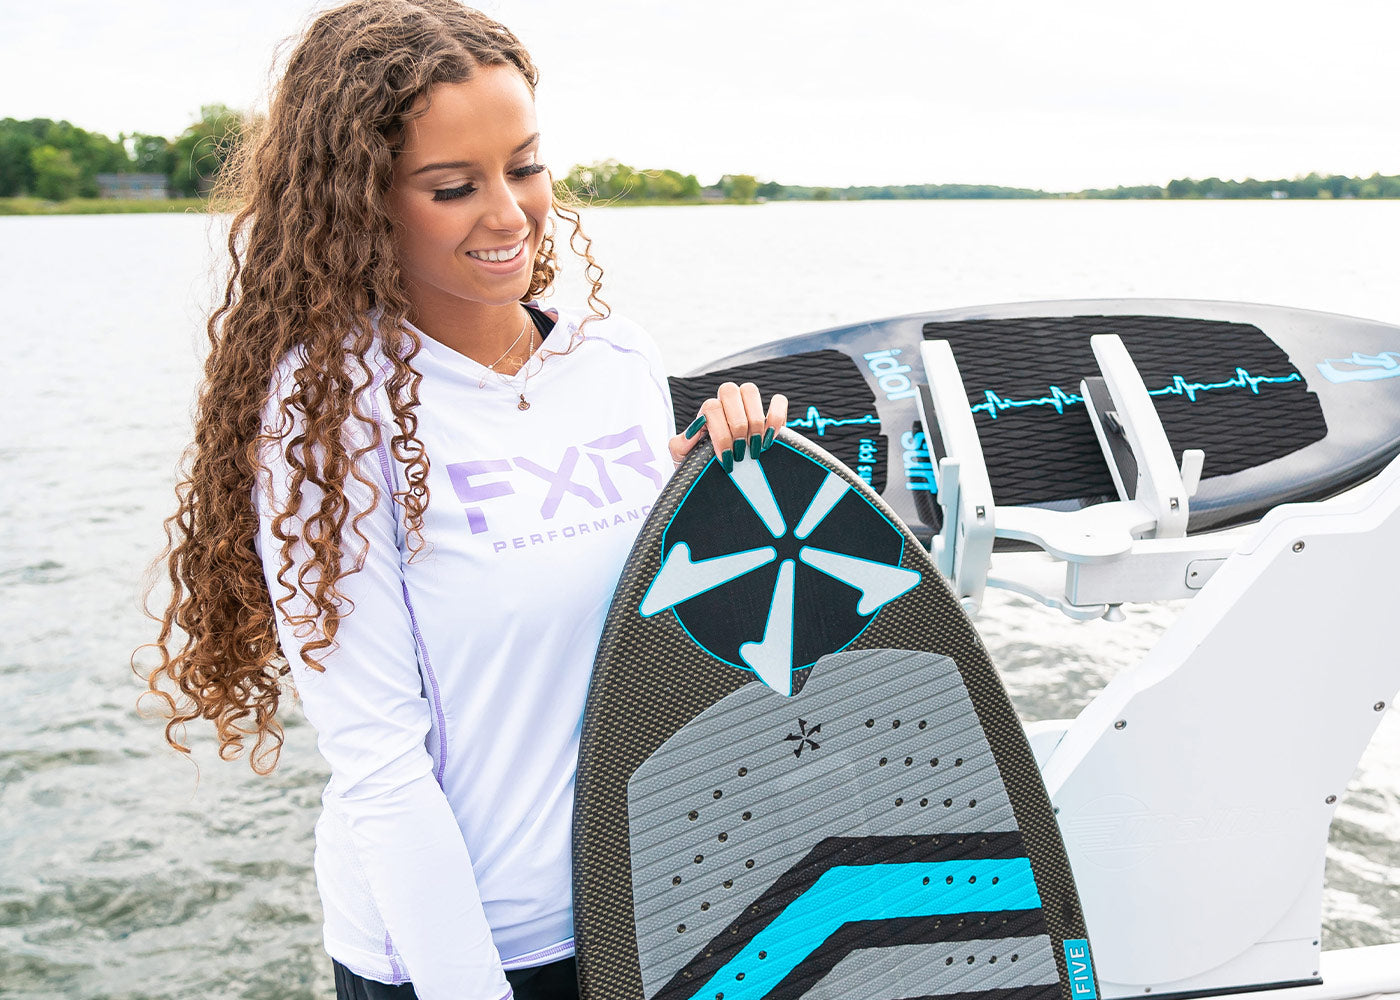 A woman wearing FXR's white and lilac Attack UPF longsleeve holding a grey and blue wakesurf board.